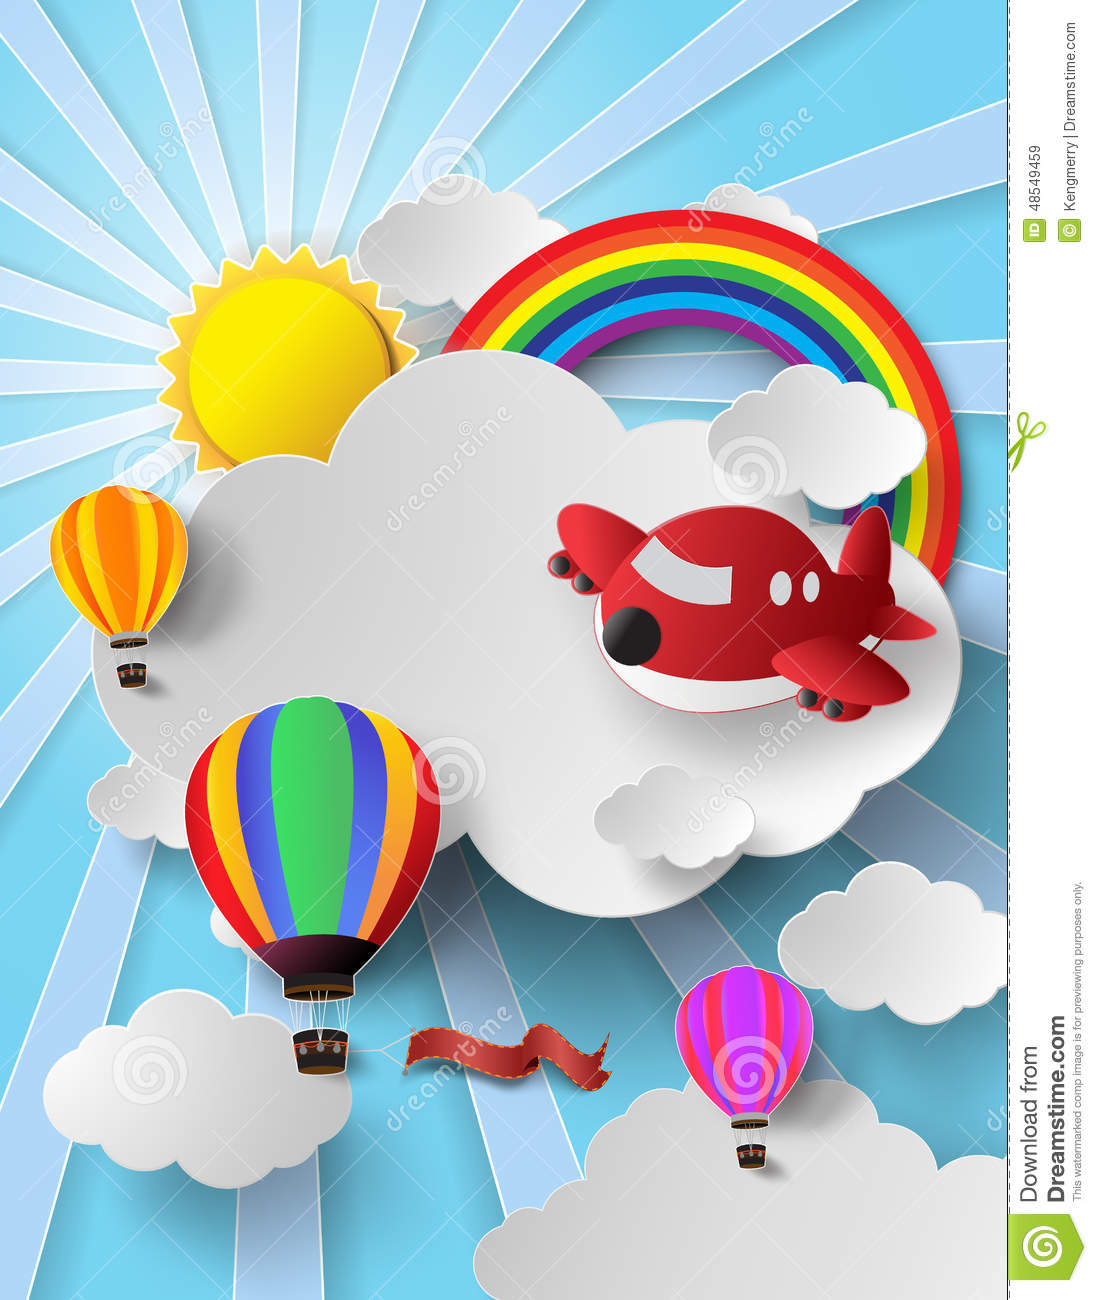 Sunlight on cloud with hot air balloon and airplane stock vector illustration of illustration